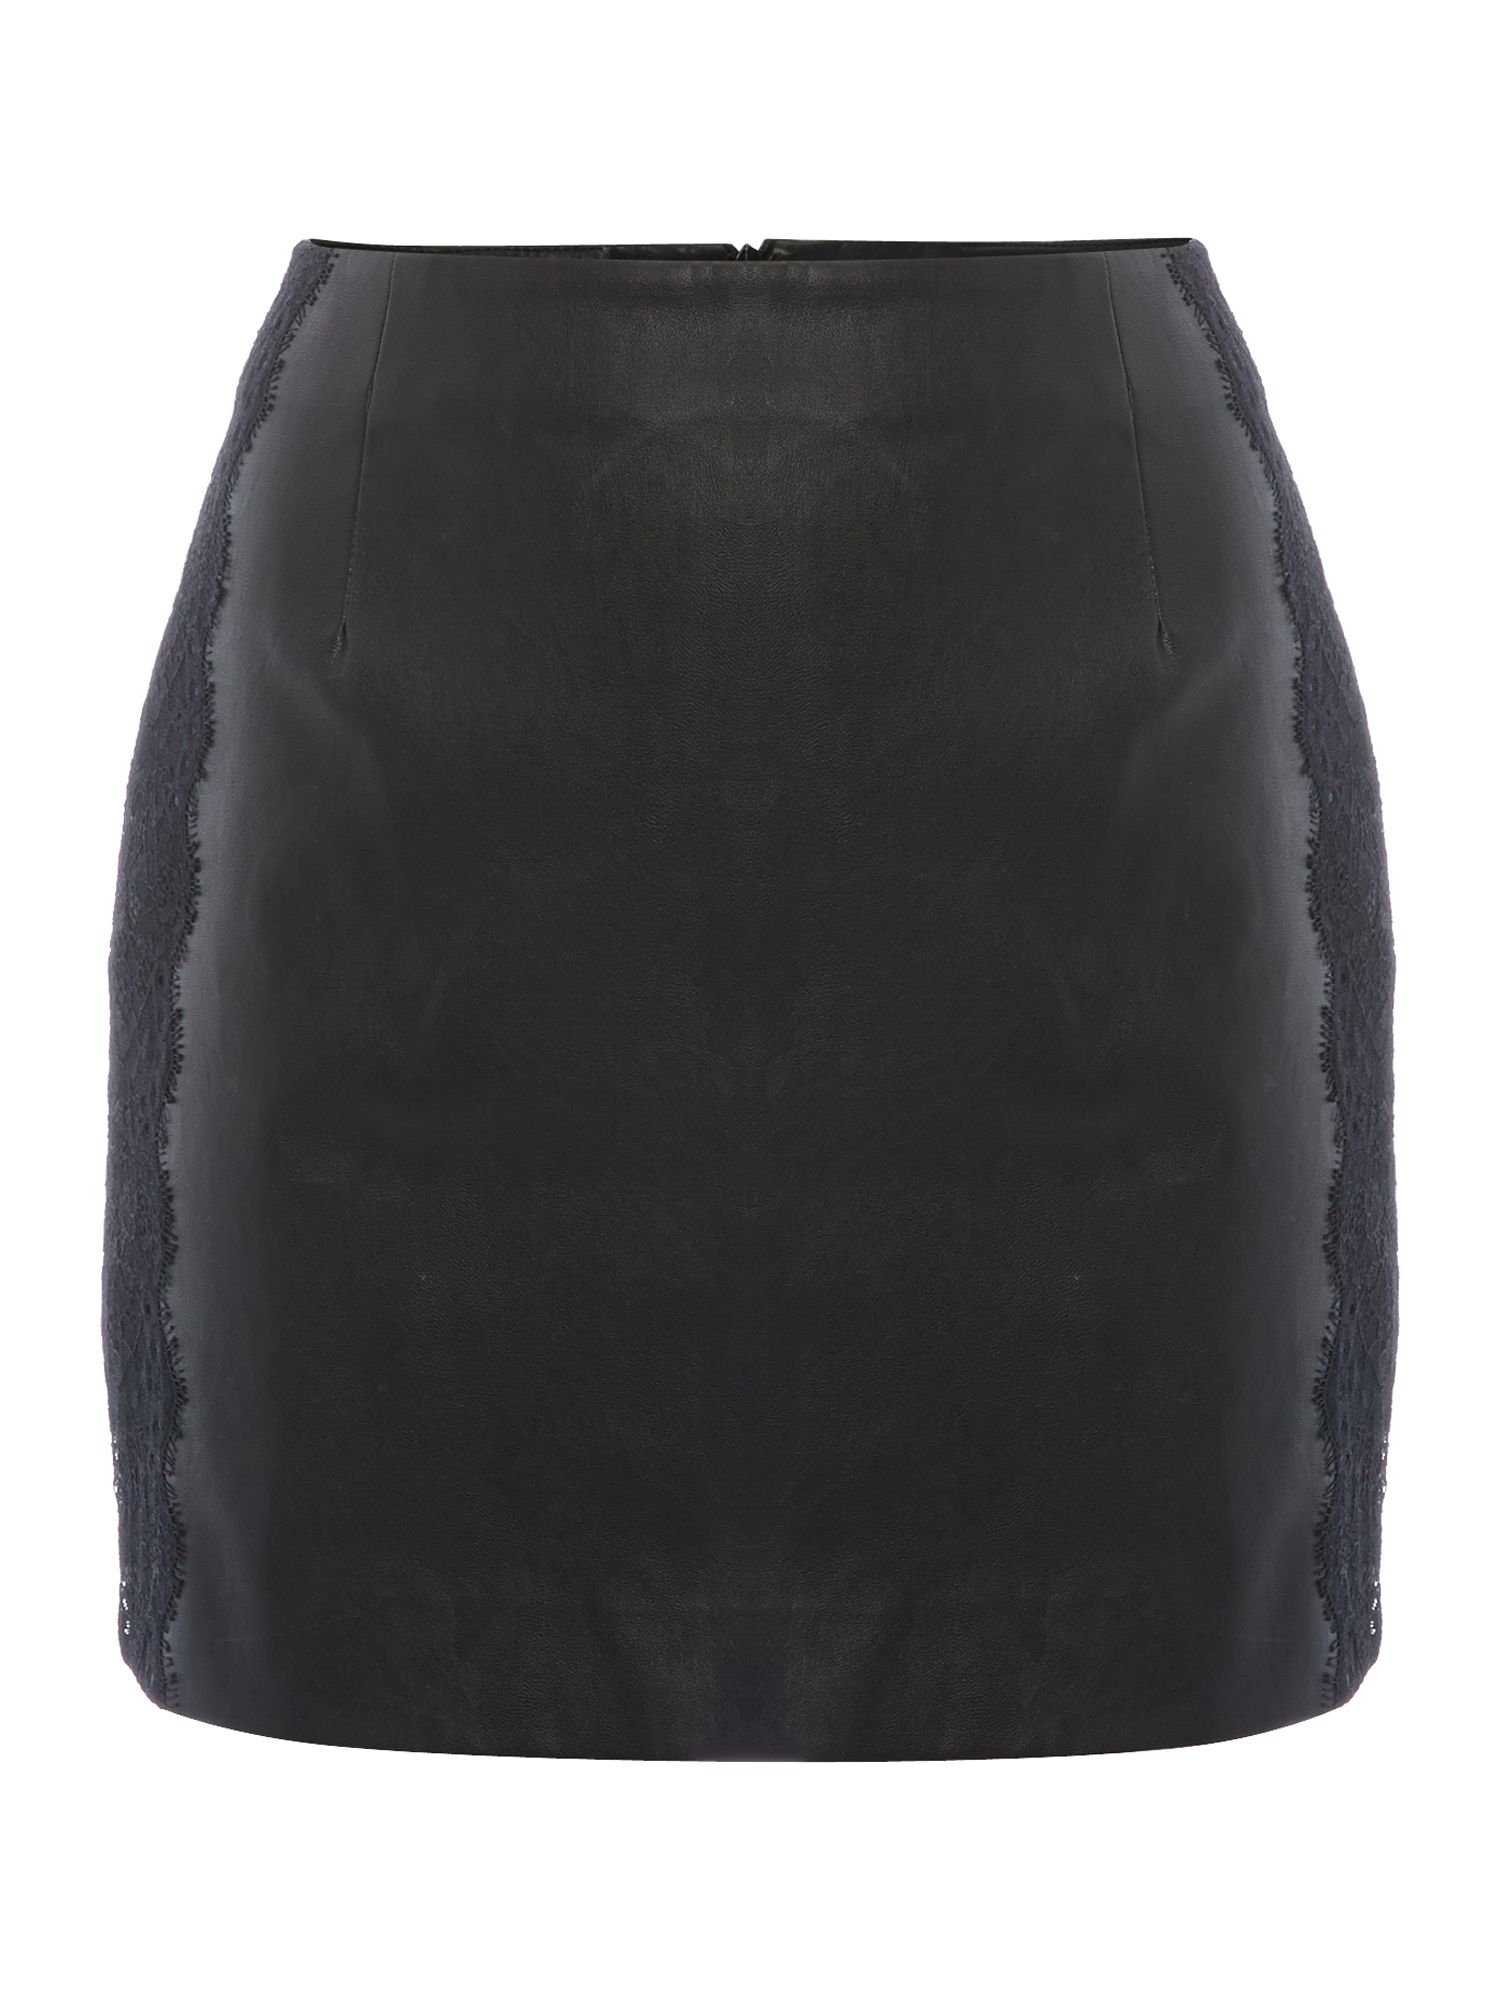 Dani PU lace panel skirt